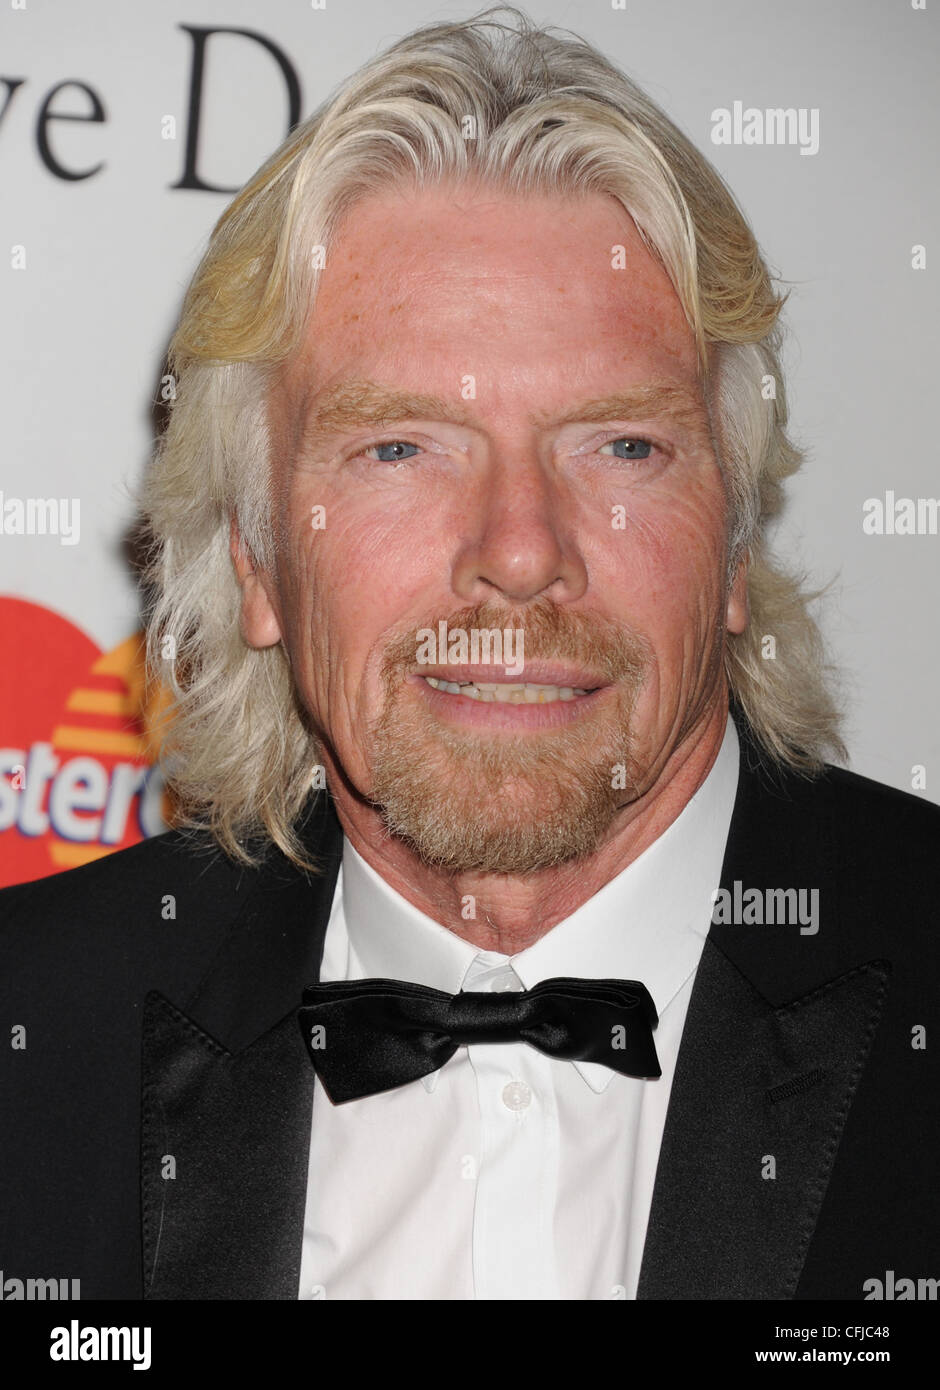 SIR RICHARD BRANSON UK businessman in February 2012. Photo Jeffrey Mayer Stock Photo